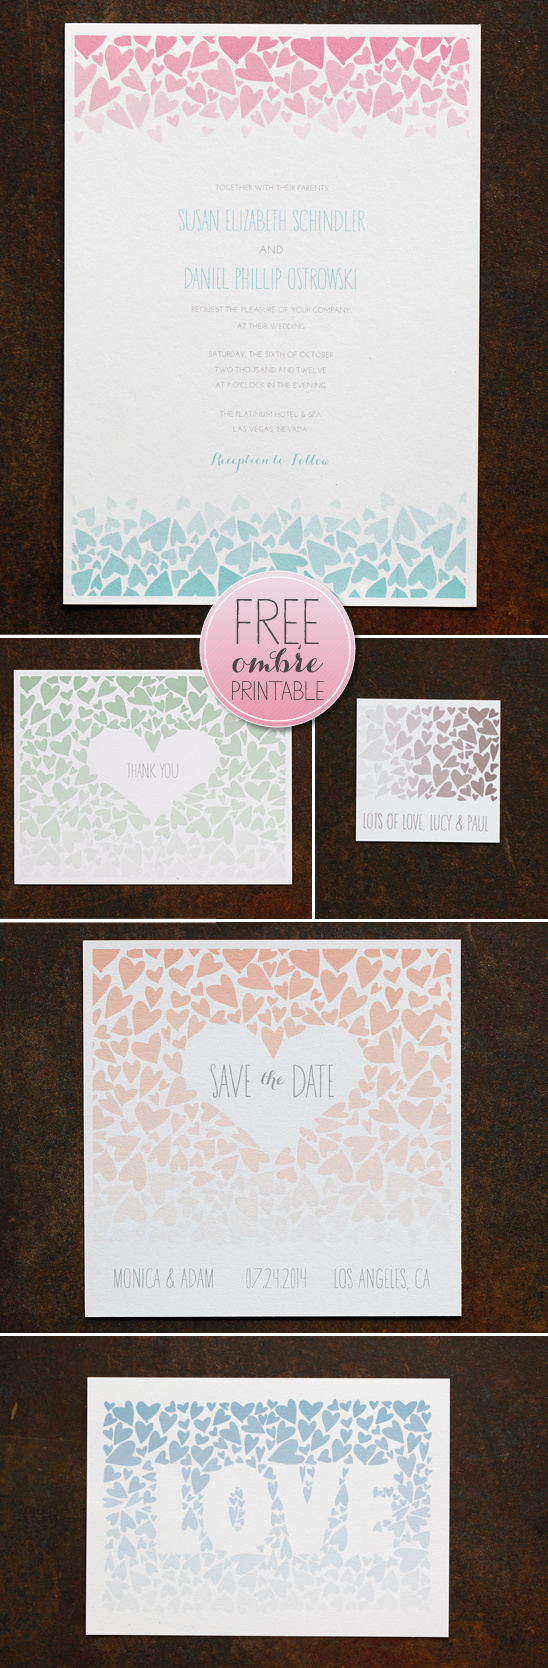 Free Ombre Printables